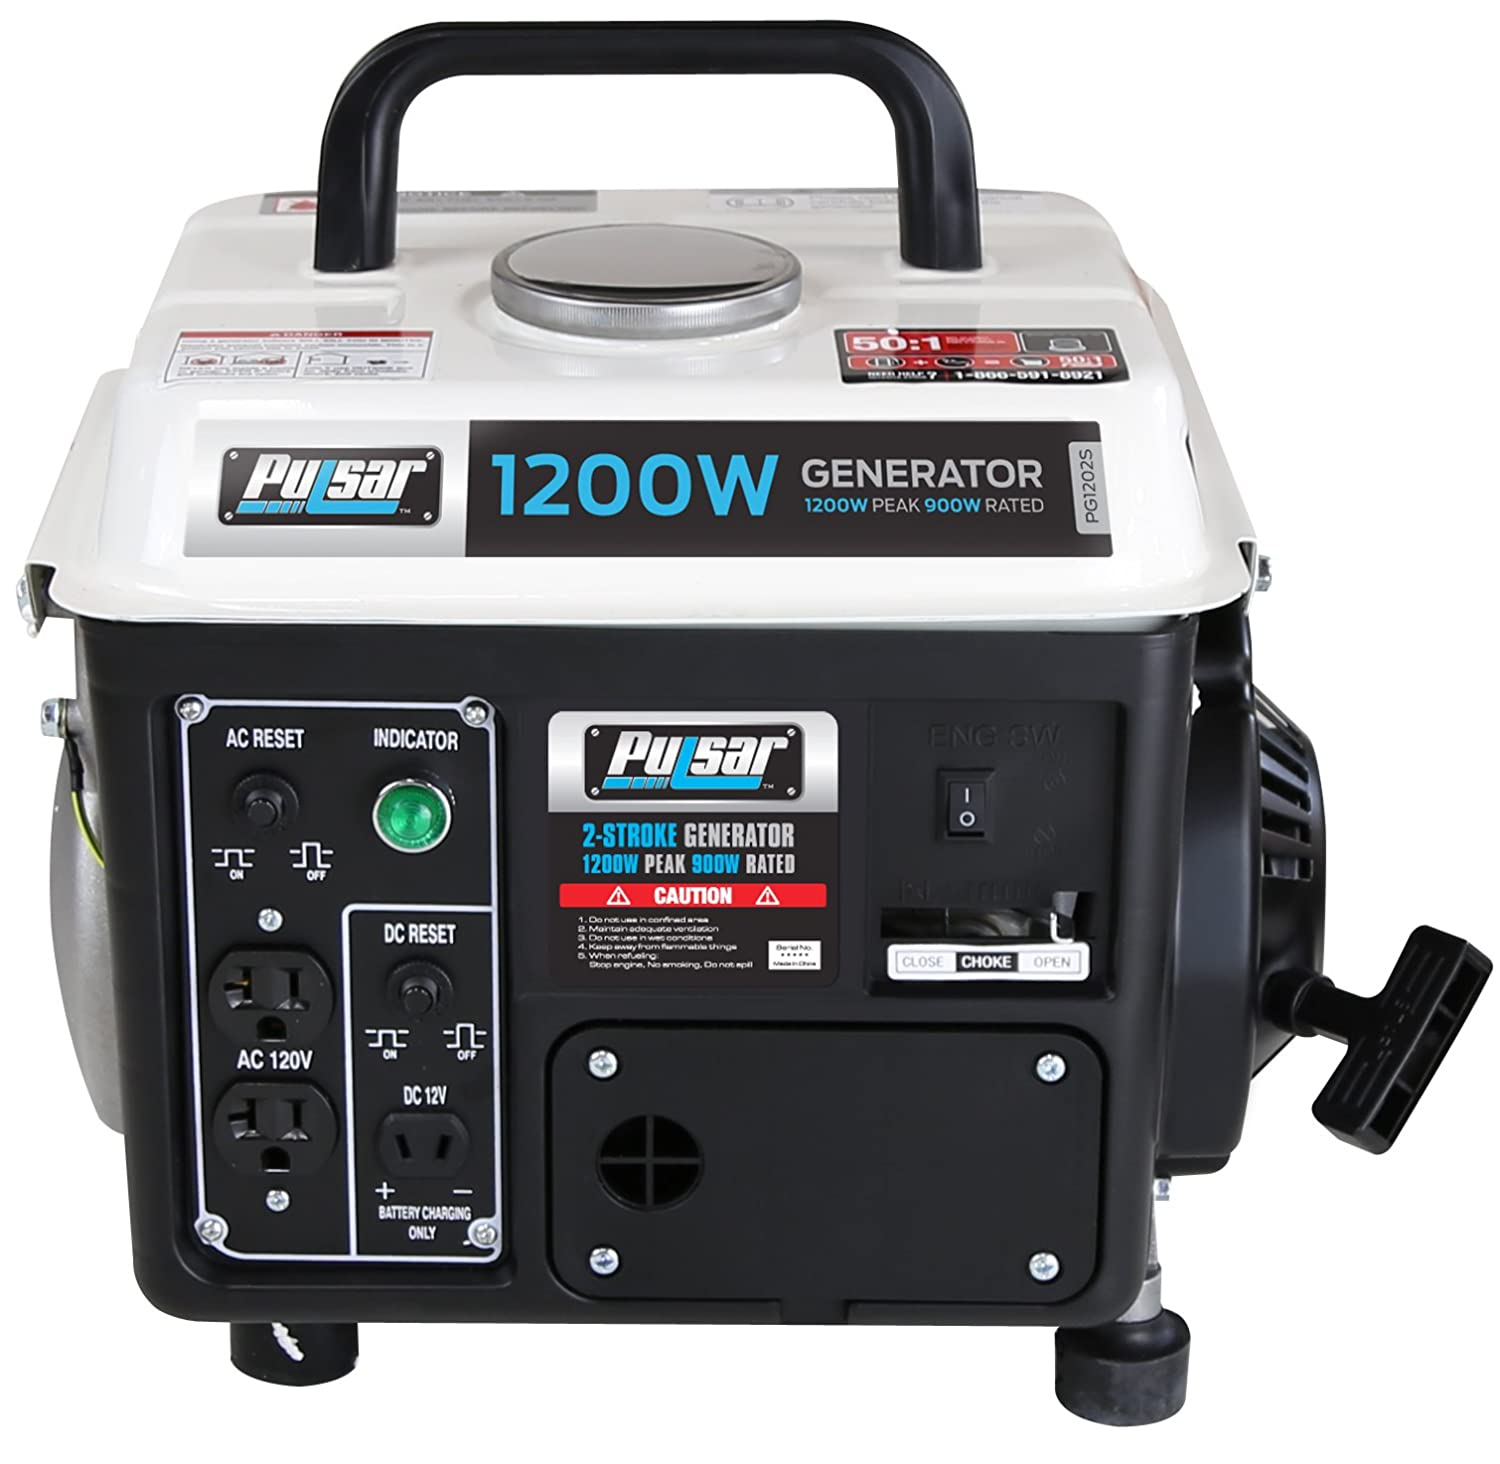 Pulsar 1 200w Portable Gas Powered Generator With Avr Circuit Source Abuse Report Diesel Carrying Handle Pg1202s Power Generators Garden Outdoor